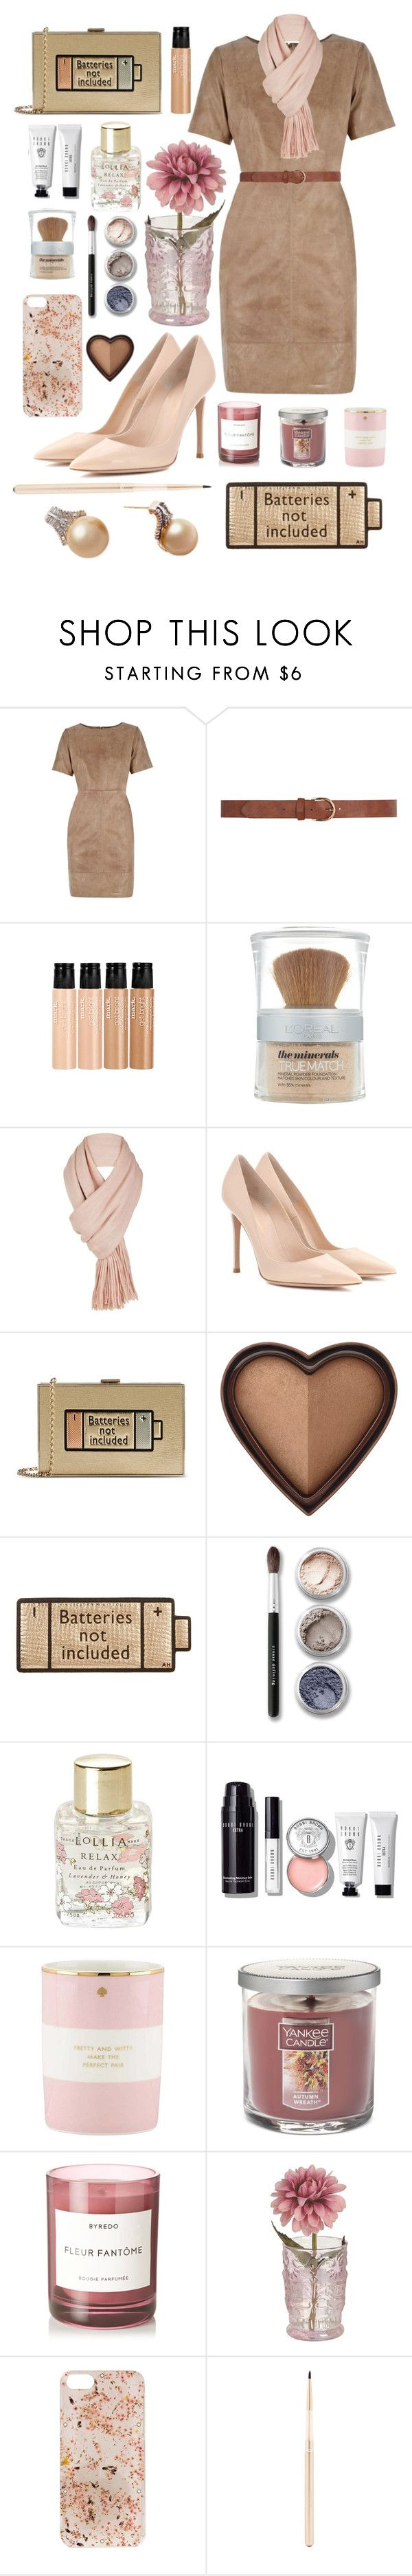 """Convenient pastel"" by anna-modestovna ❤ liked on Polyvore featuring Oasis, Dorothy Perkins, mark., L'Oréal Paris, Free People, Gianvito Rossi, Anya Hindmarch, Too Faced Cosmetics, Bare Escentuals and Lollia"